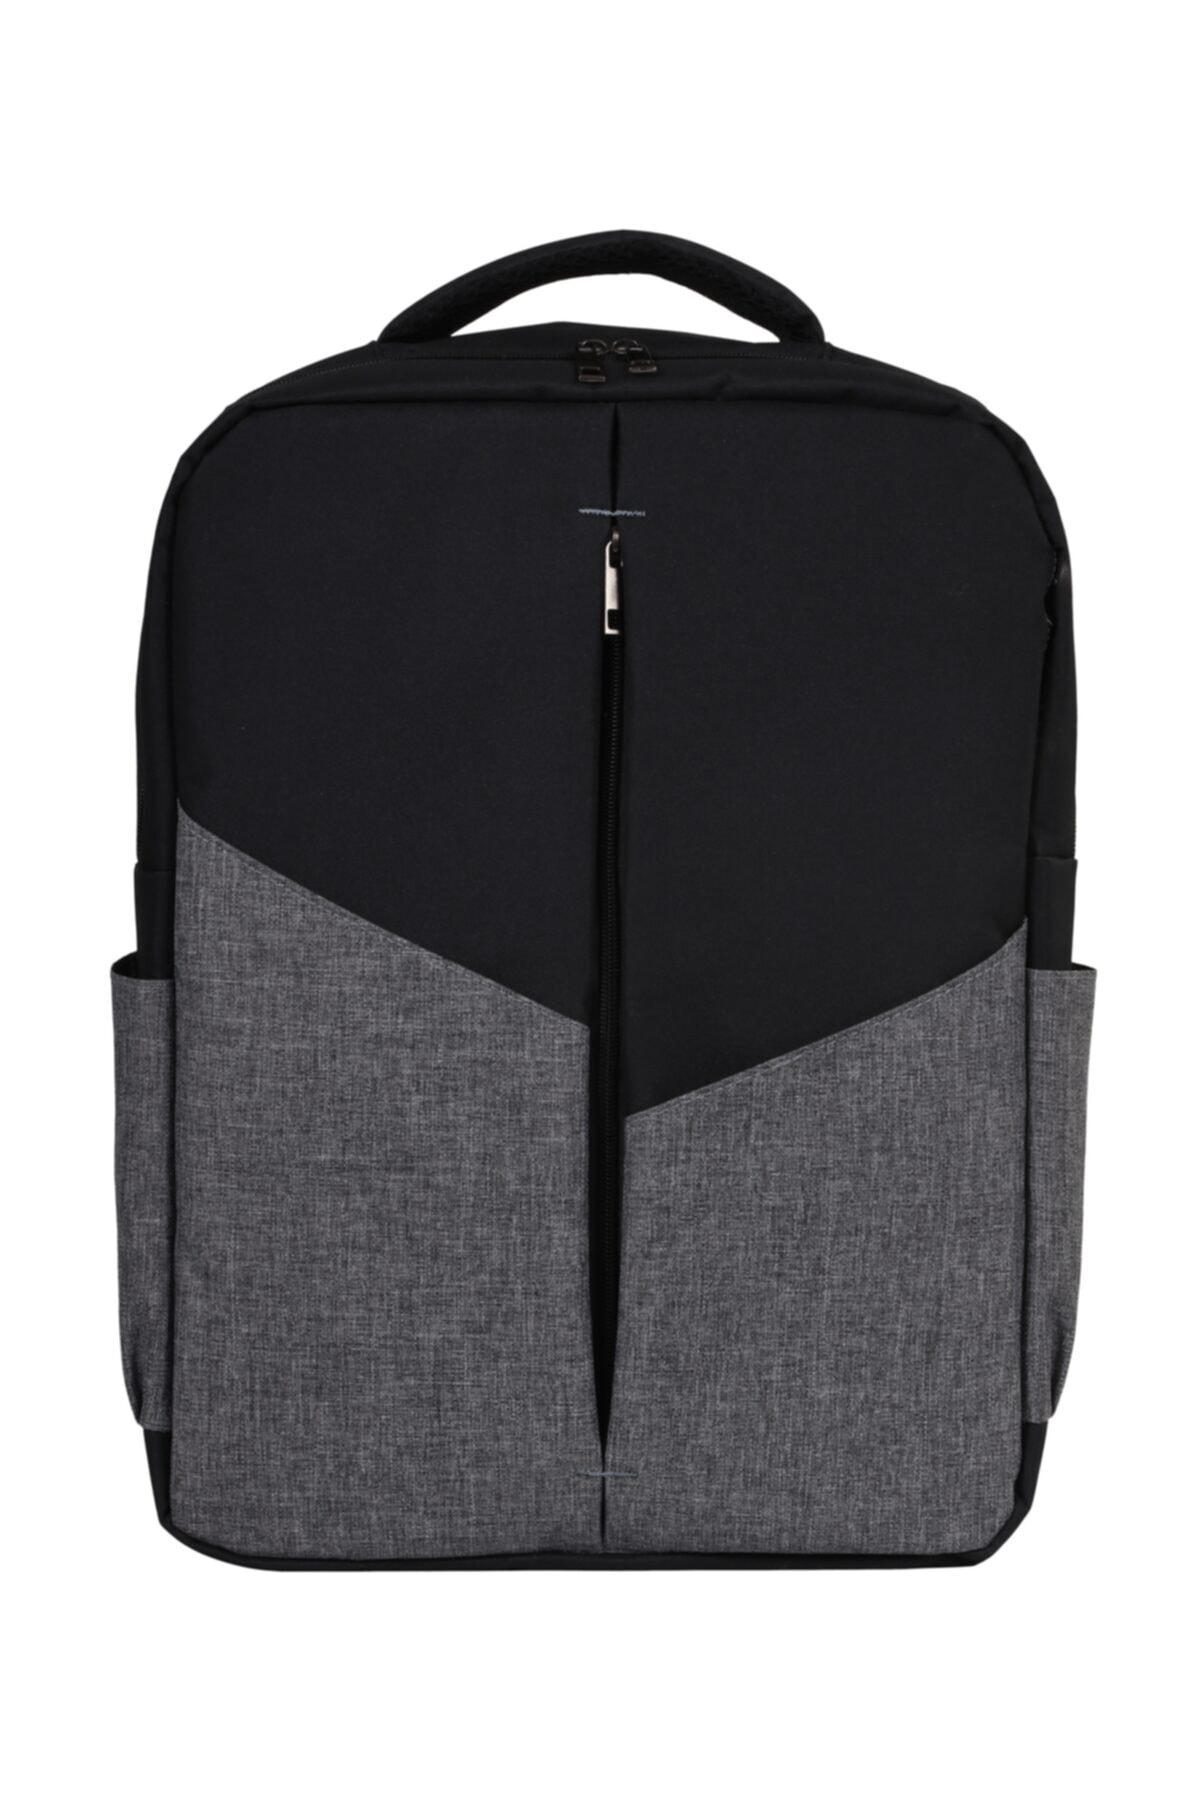 ! !!! Outlets Rates Continue!!!! Id-002 Notebook Laptop Backpack Gray-black 15.6